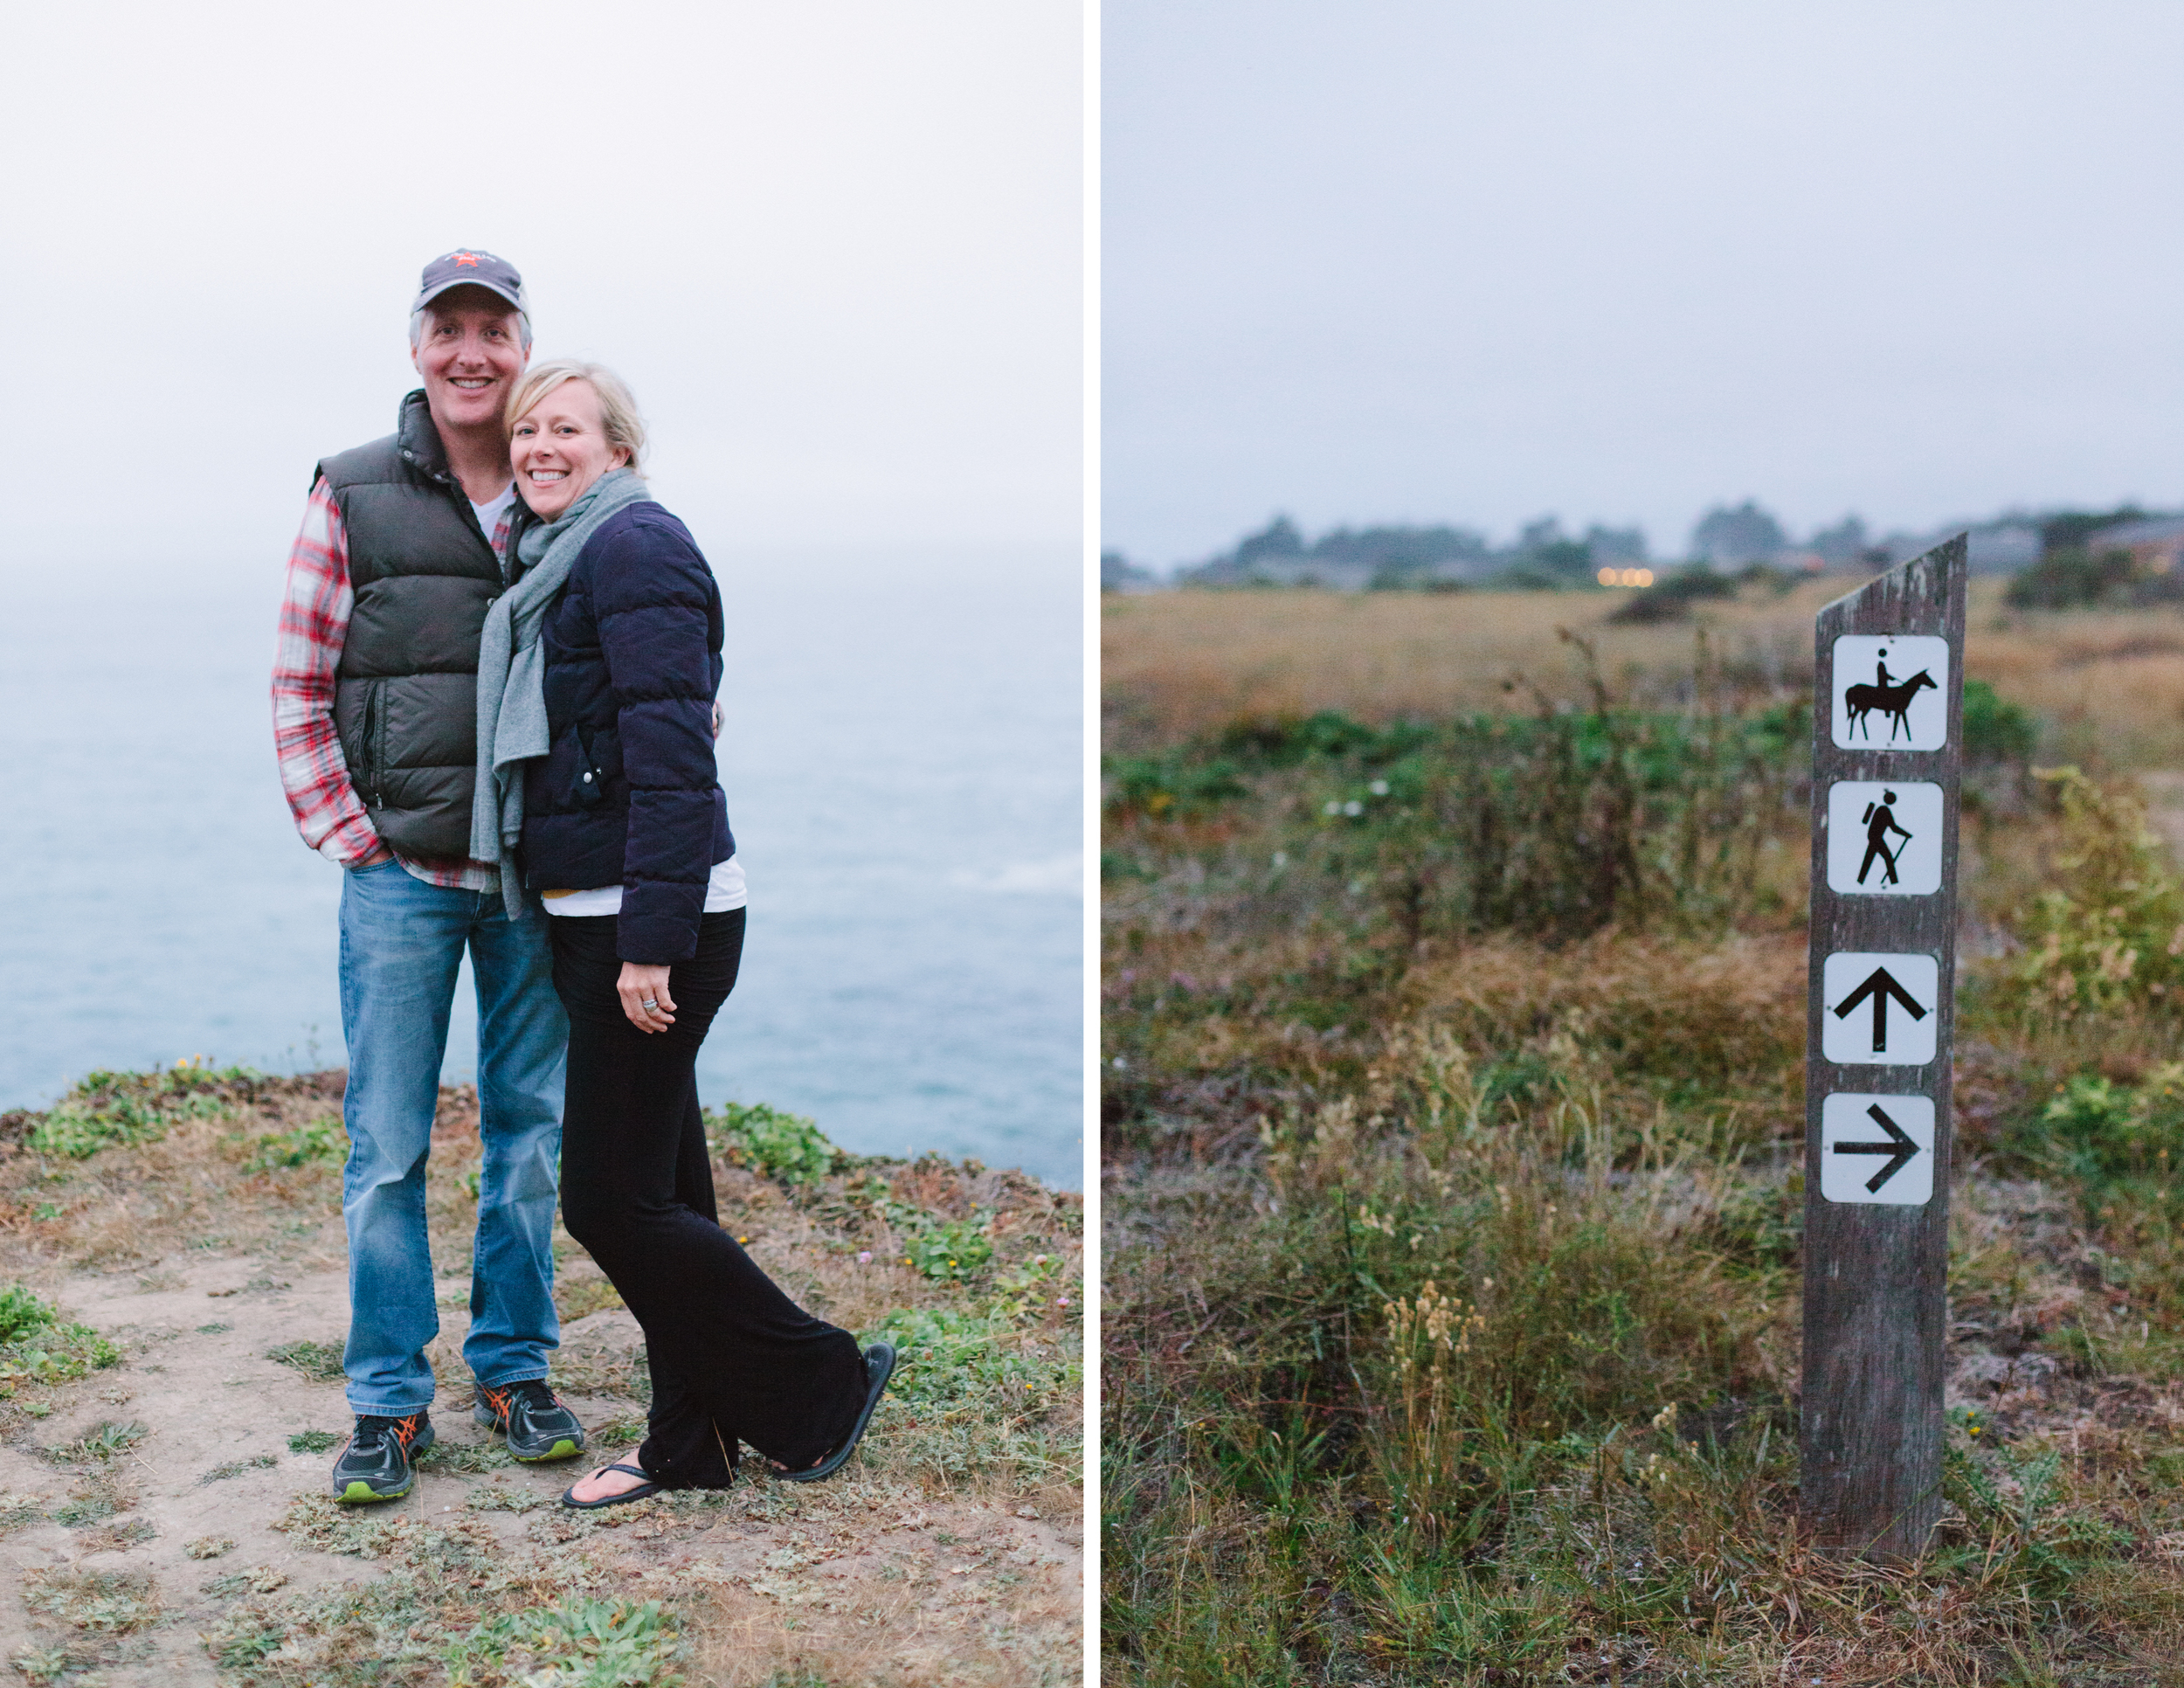 sea ranch wedding 4.jpg